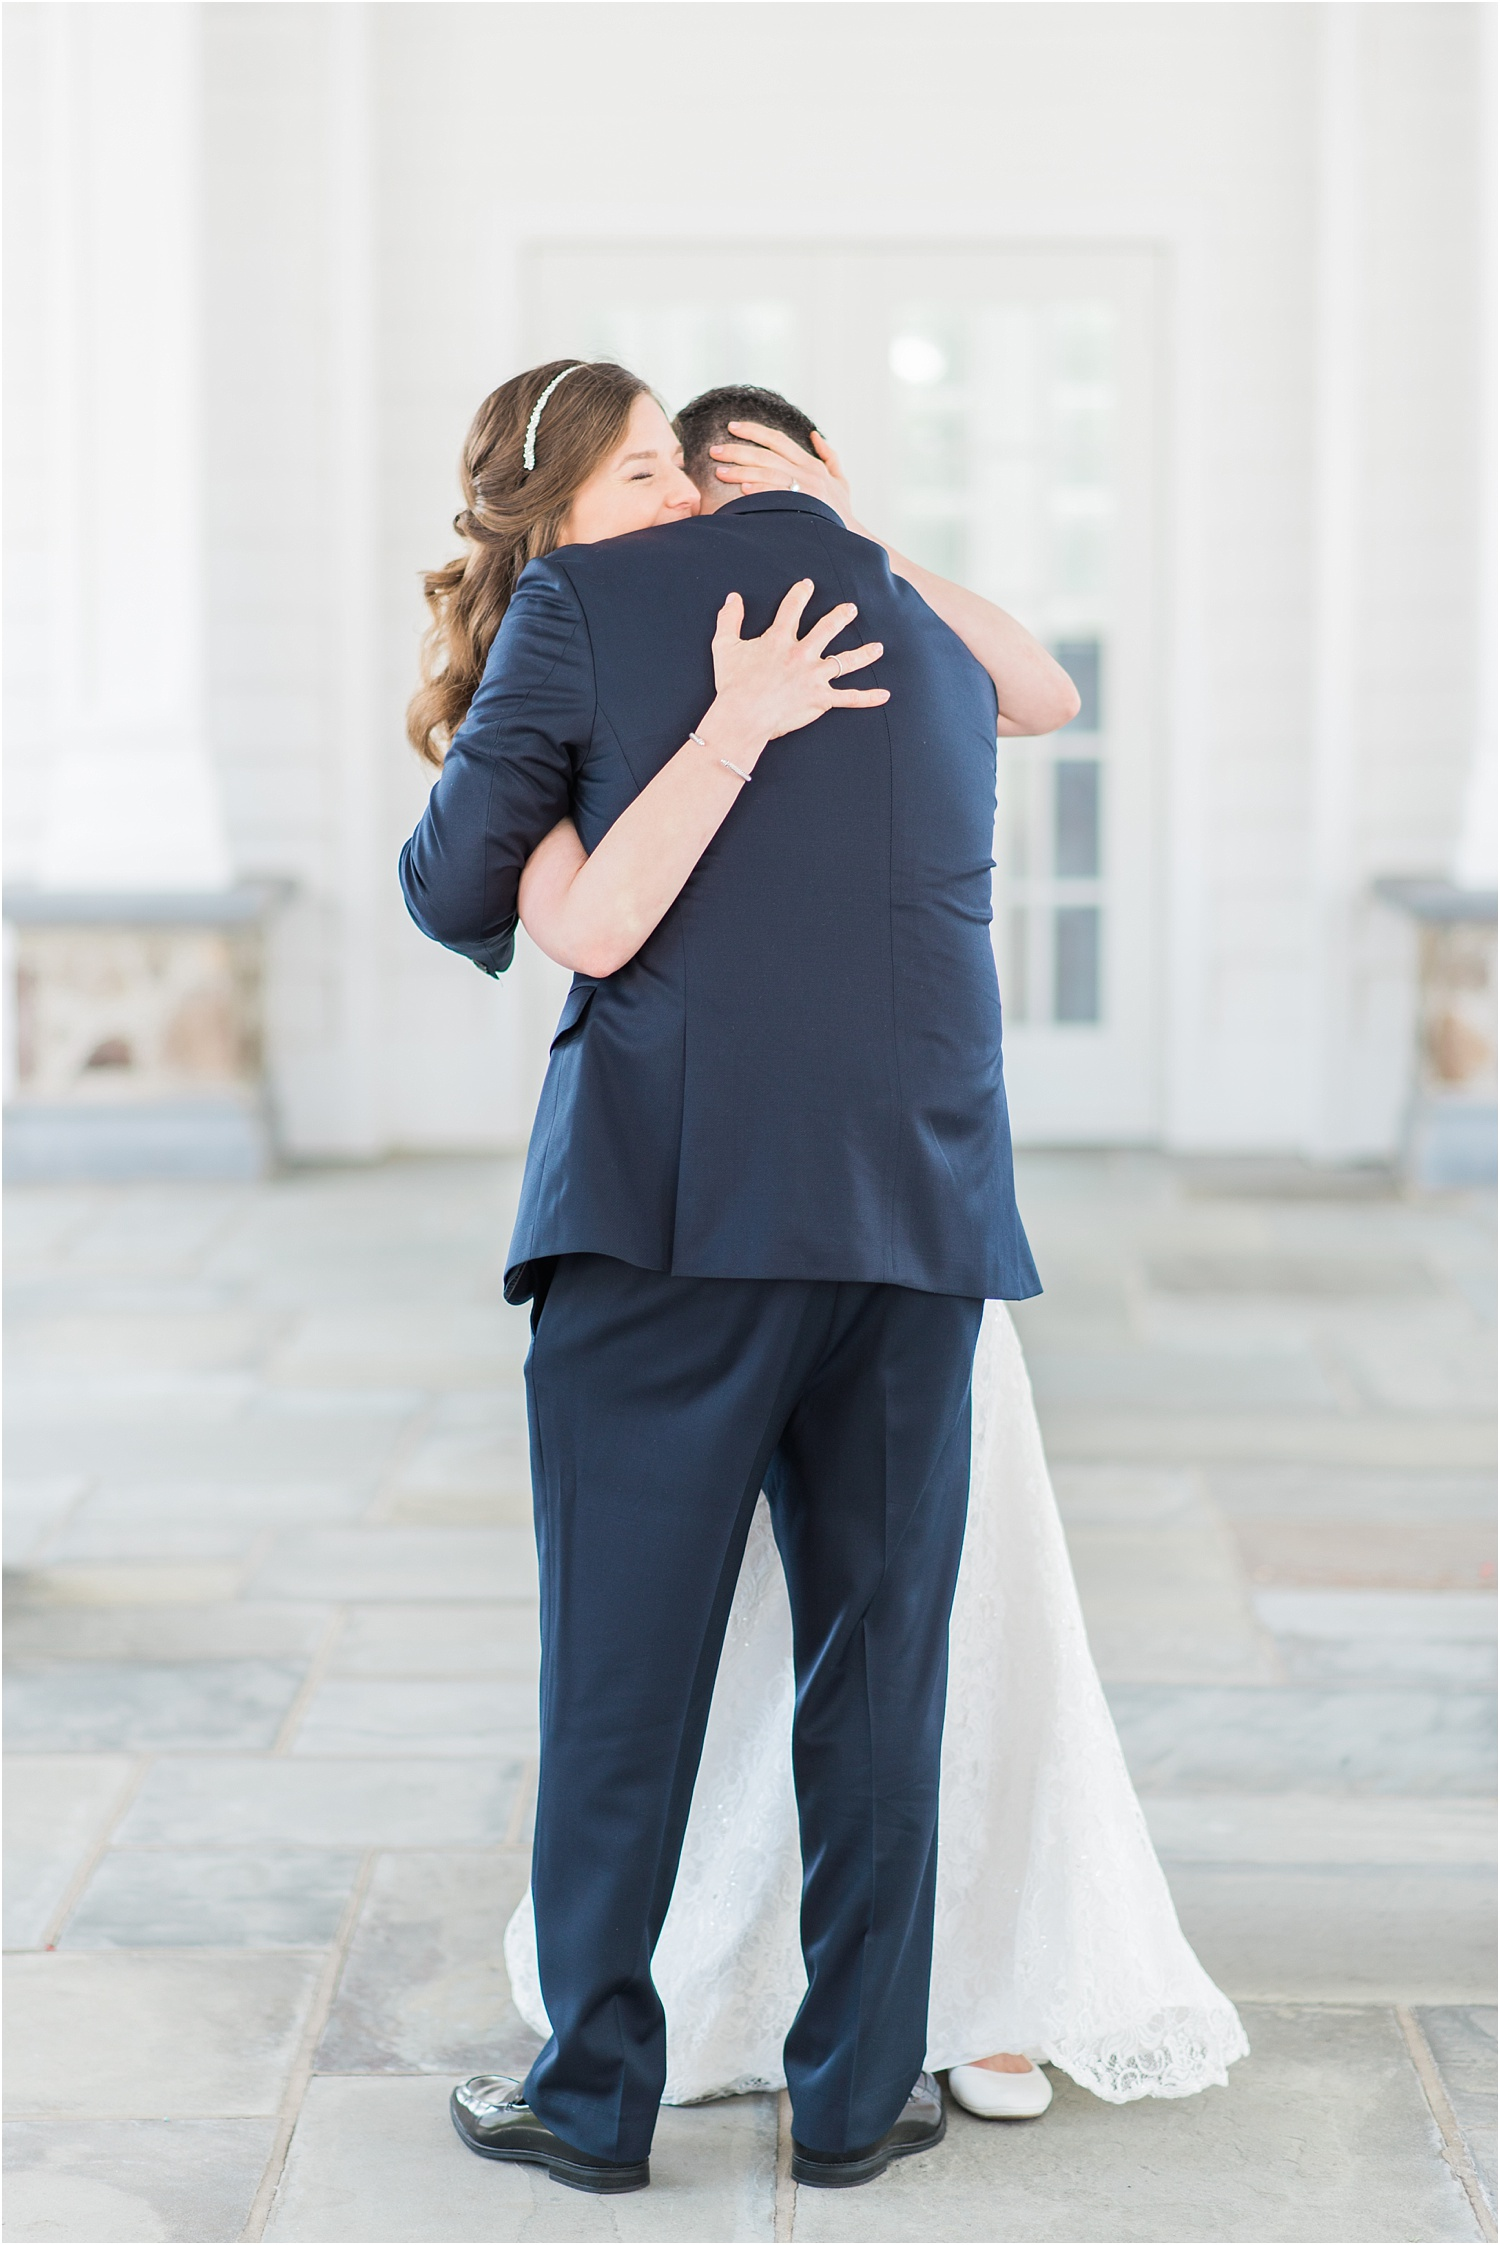 First looks are quickly becoming my favorite. Not only do you get SO many more portraits of the two of you, but you really get to take a moment and soak up all the emotion of seeing each other for the first time- and without an audience.